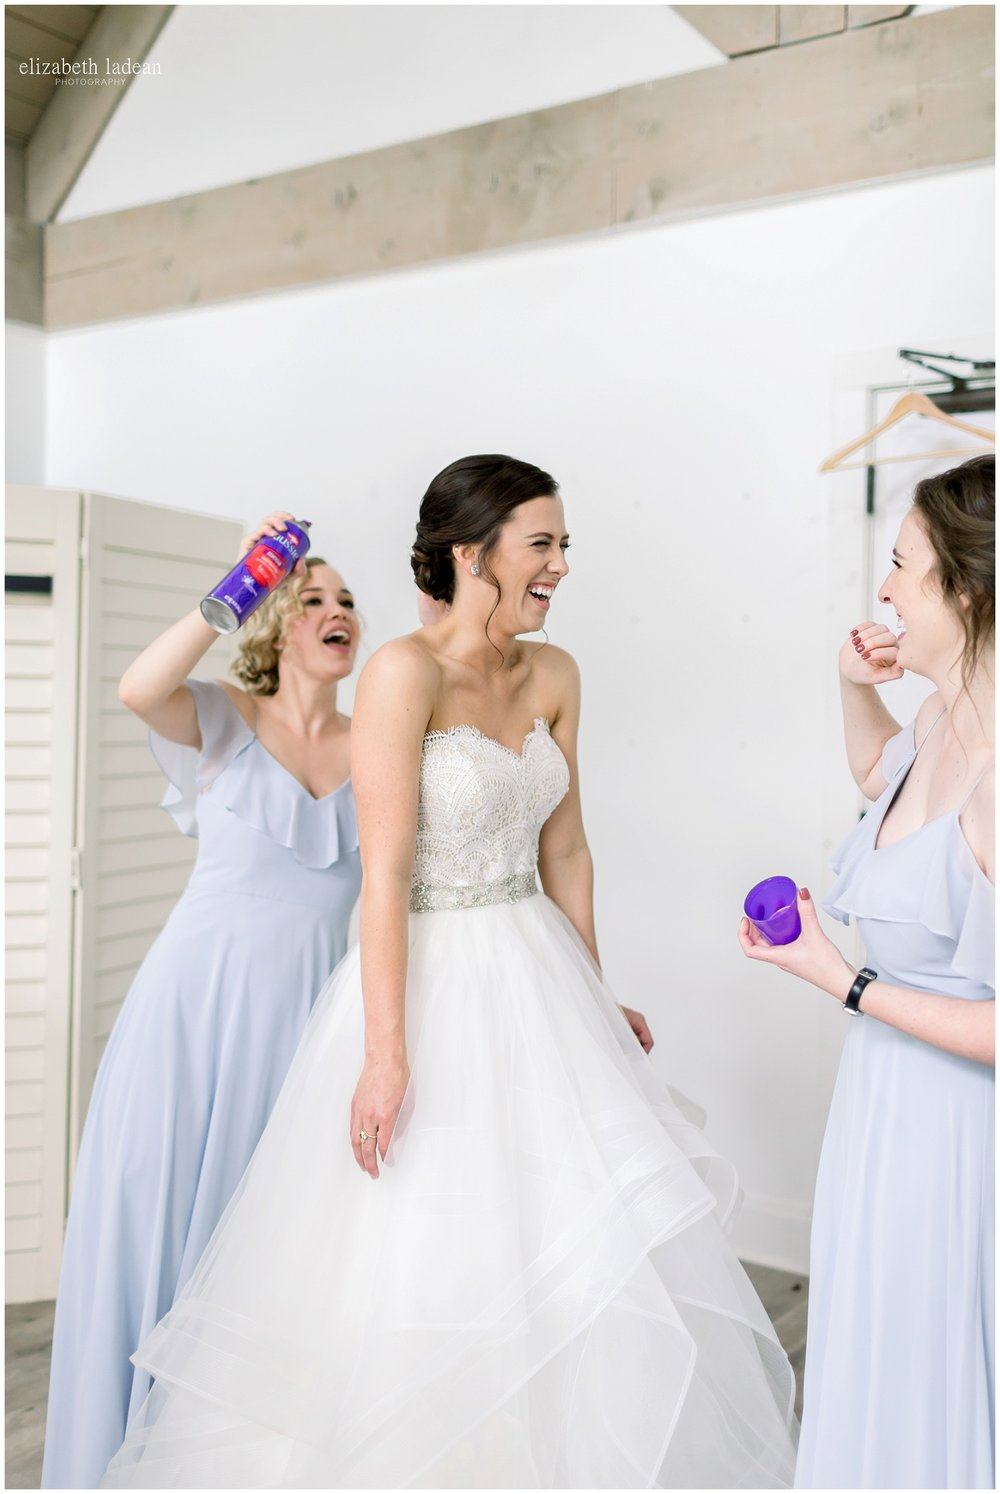 -behind-the-scenes-of-a-wedding-photographer-2018-elizabeth-ladean-photography-photo_3457.jpg